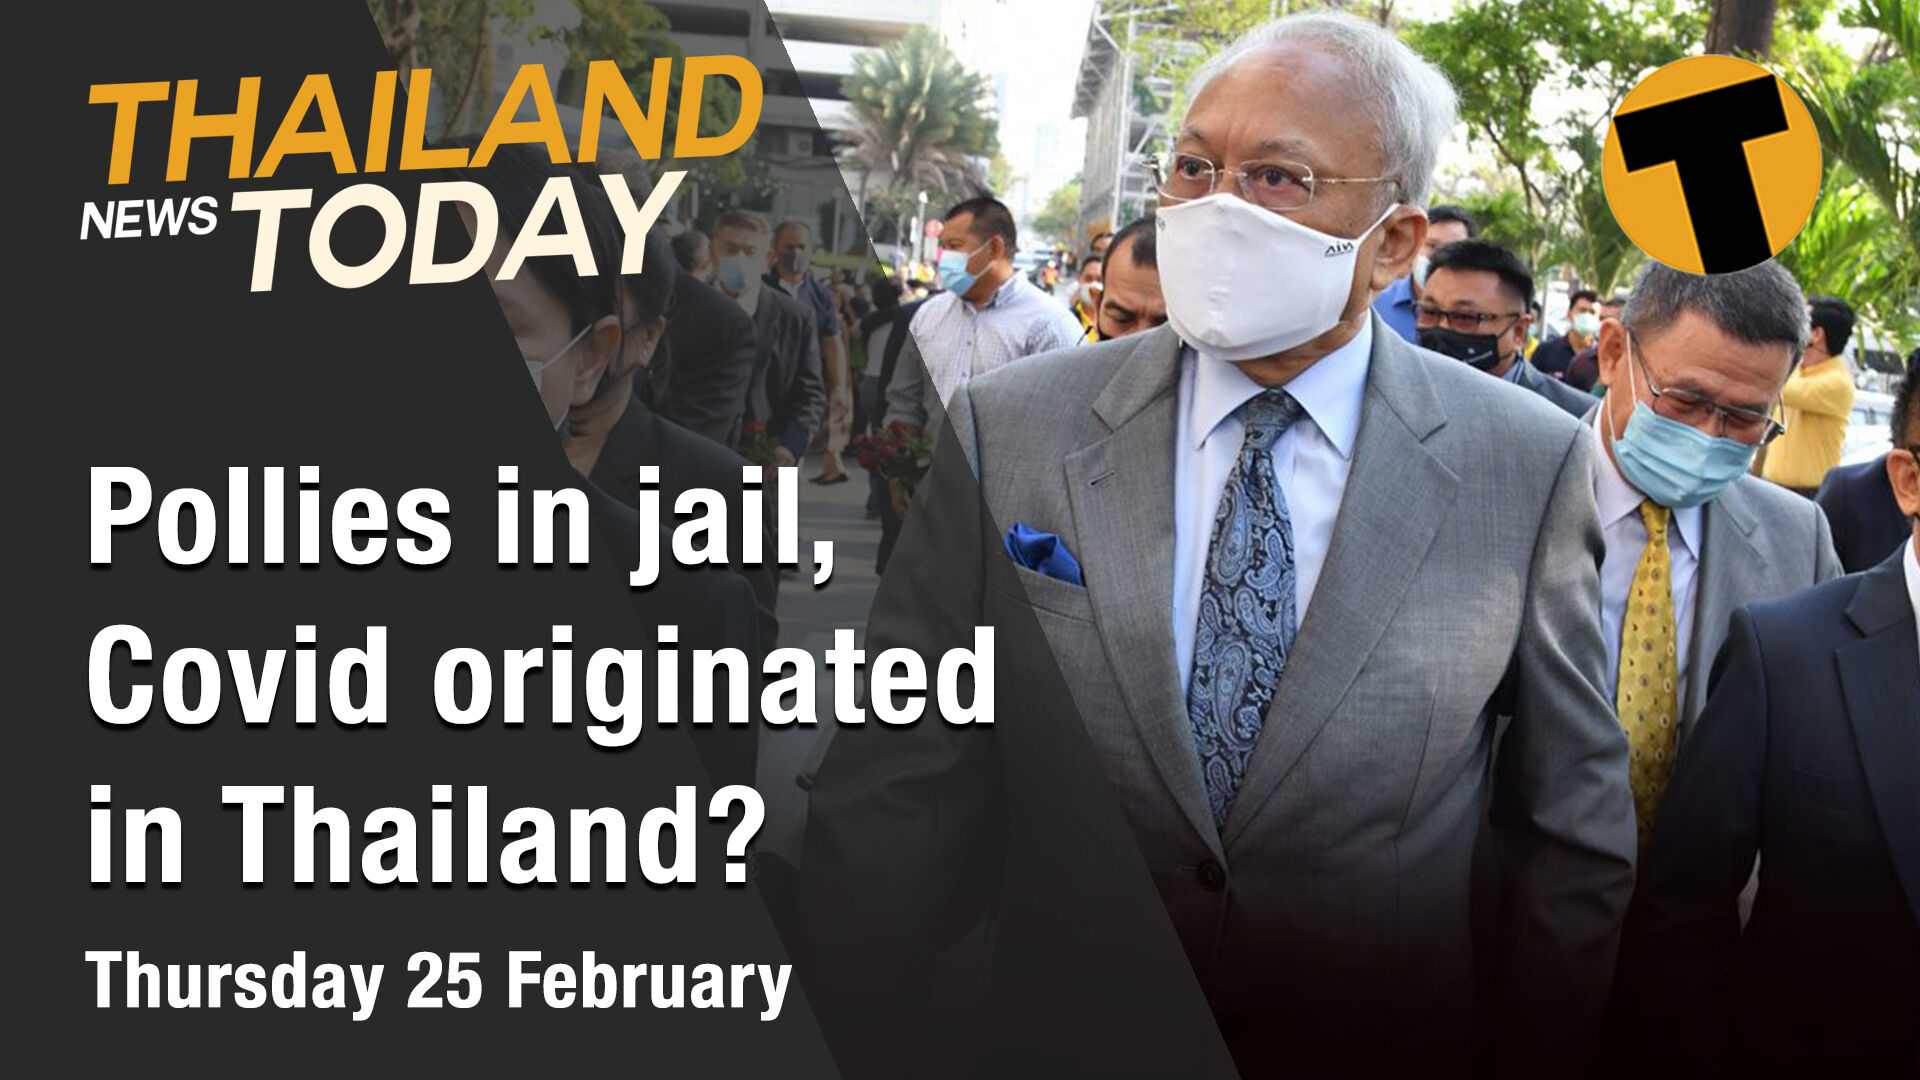 Thailand News Today | Pollies in jail, Covid originated in Thailand? | Feb 25 | Thaiger